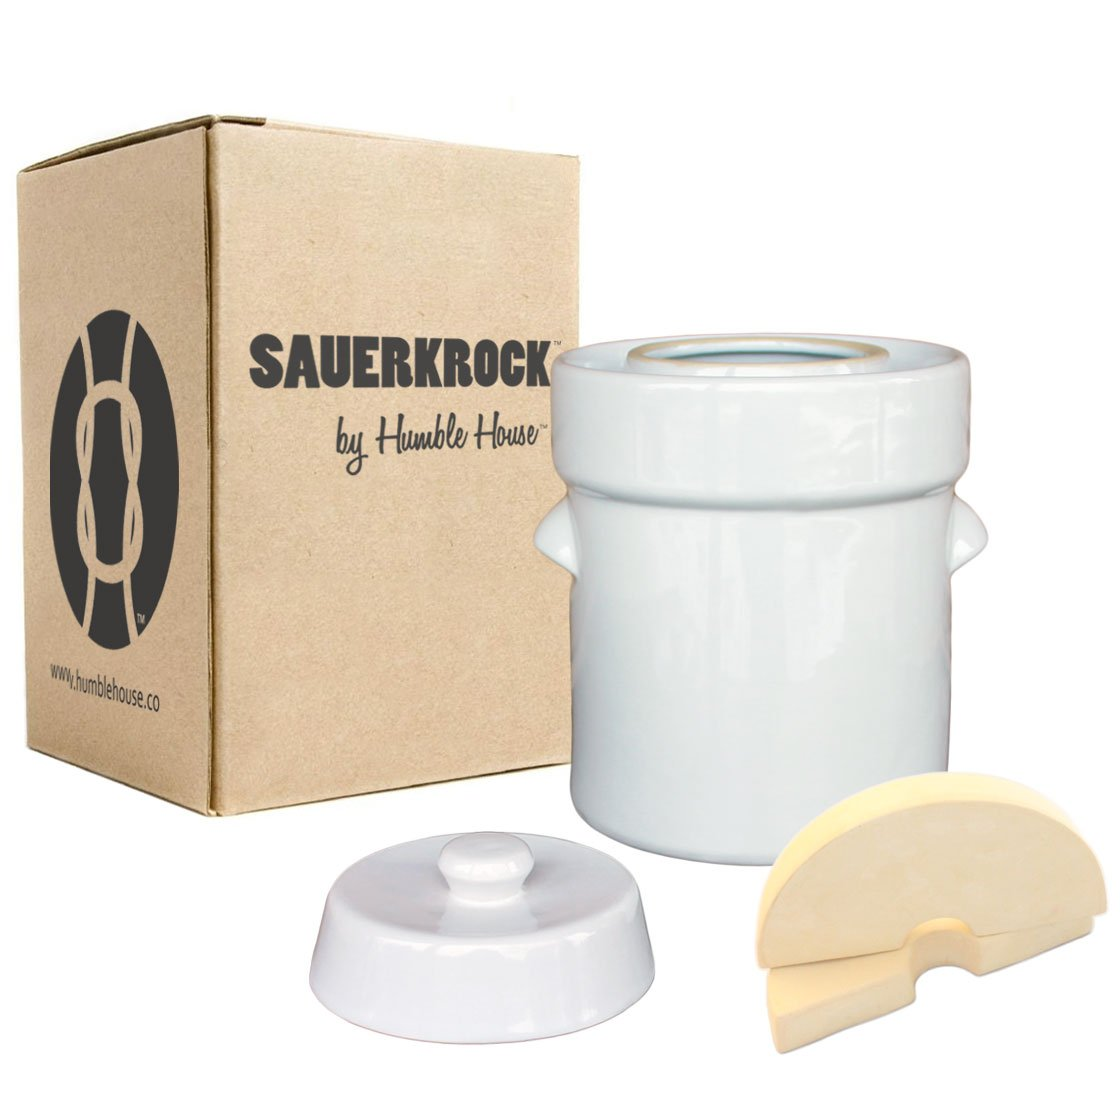 "Humble House Fermentation Crock German-Style SAUERKROCK ""Original"" 5 Liter (1.3 Gallon) Water Sealed Jar, Lid and Weights in Natural White - For Fermenting Sauerkaut, Kimchi and Pickles!"